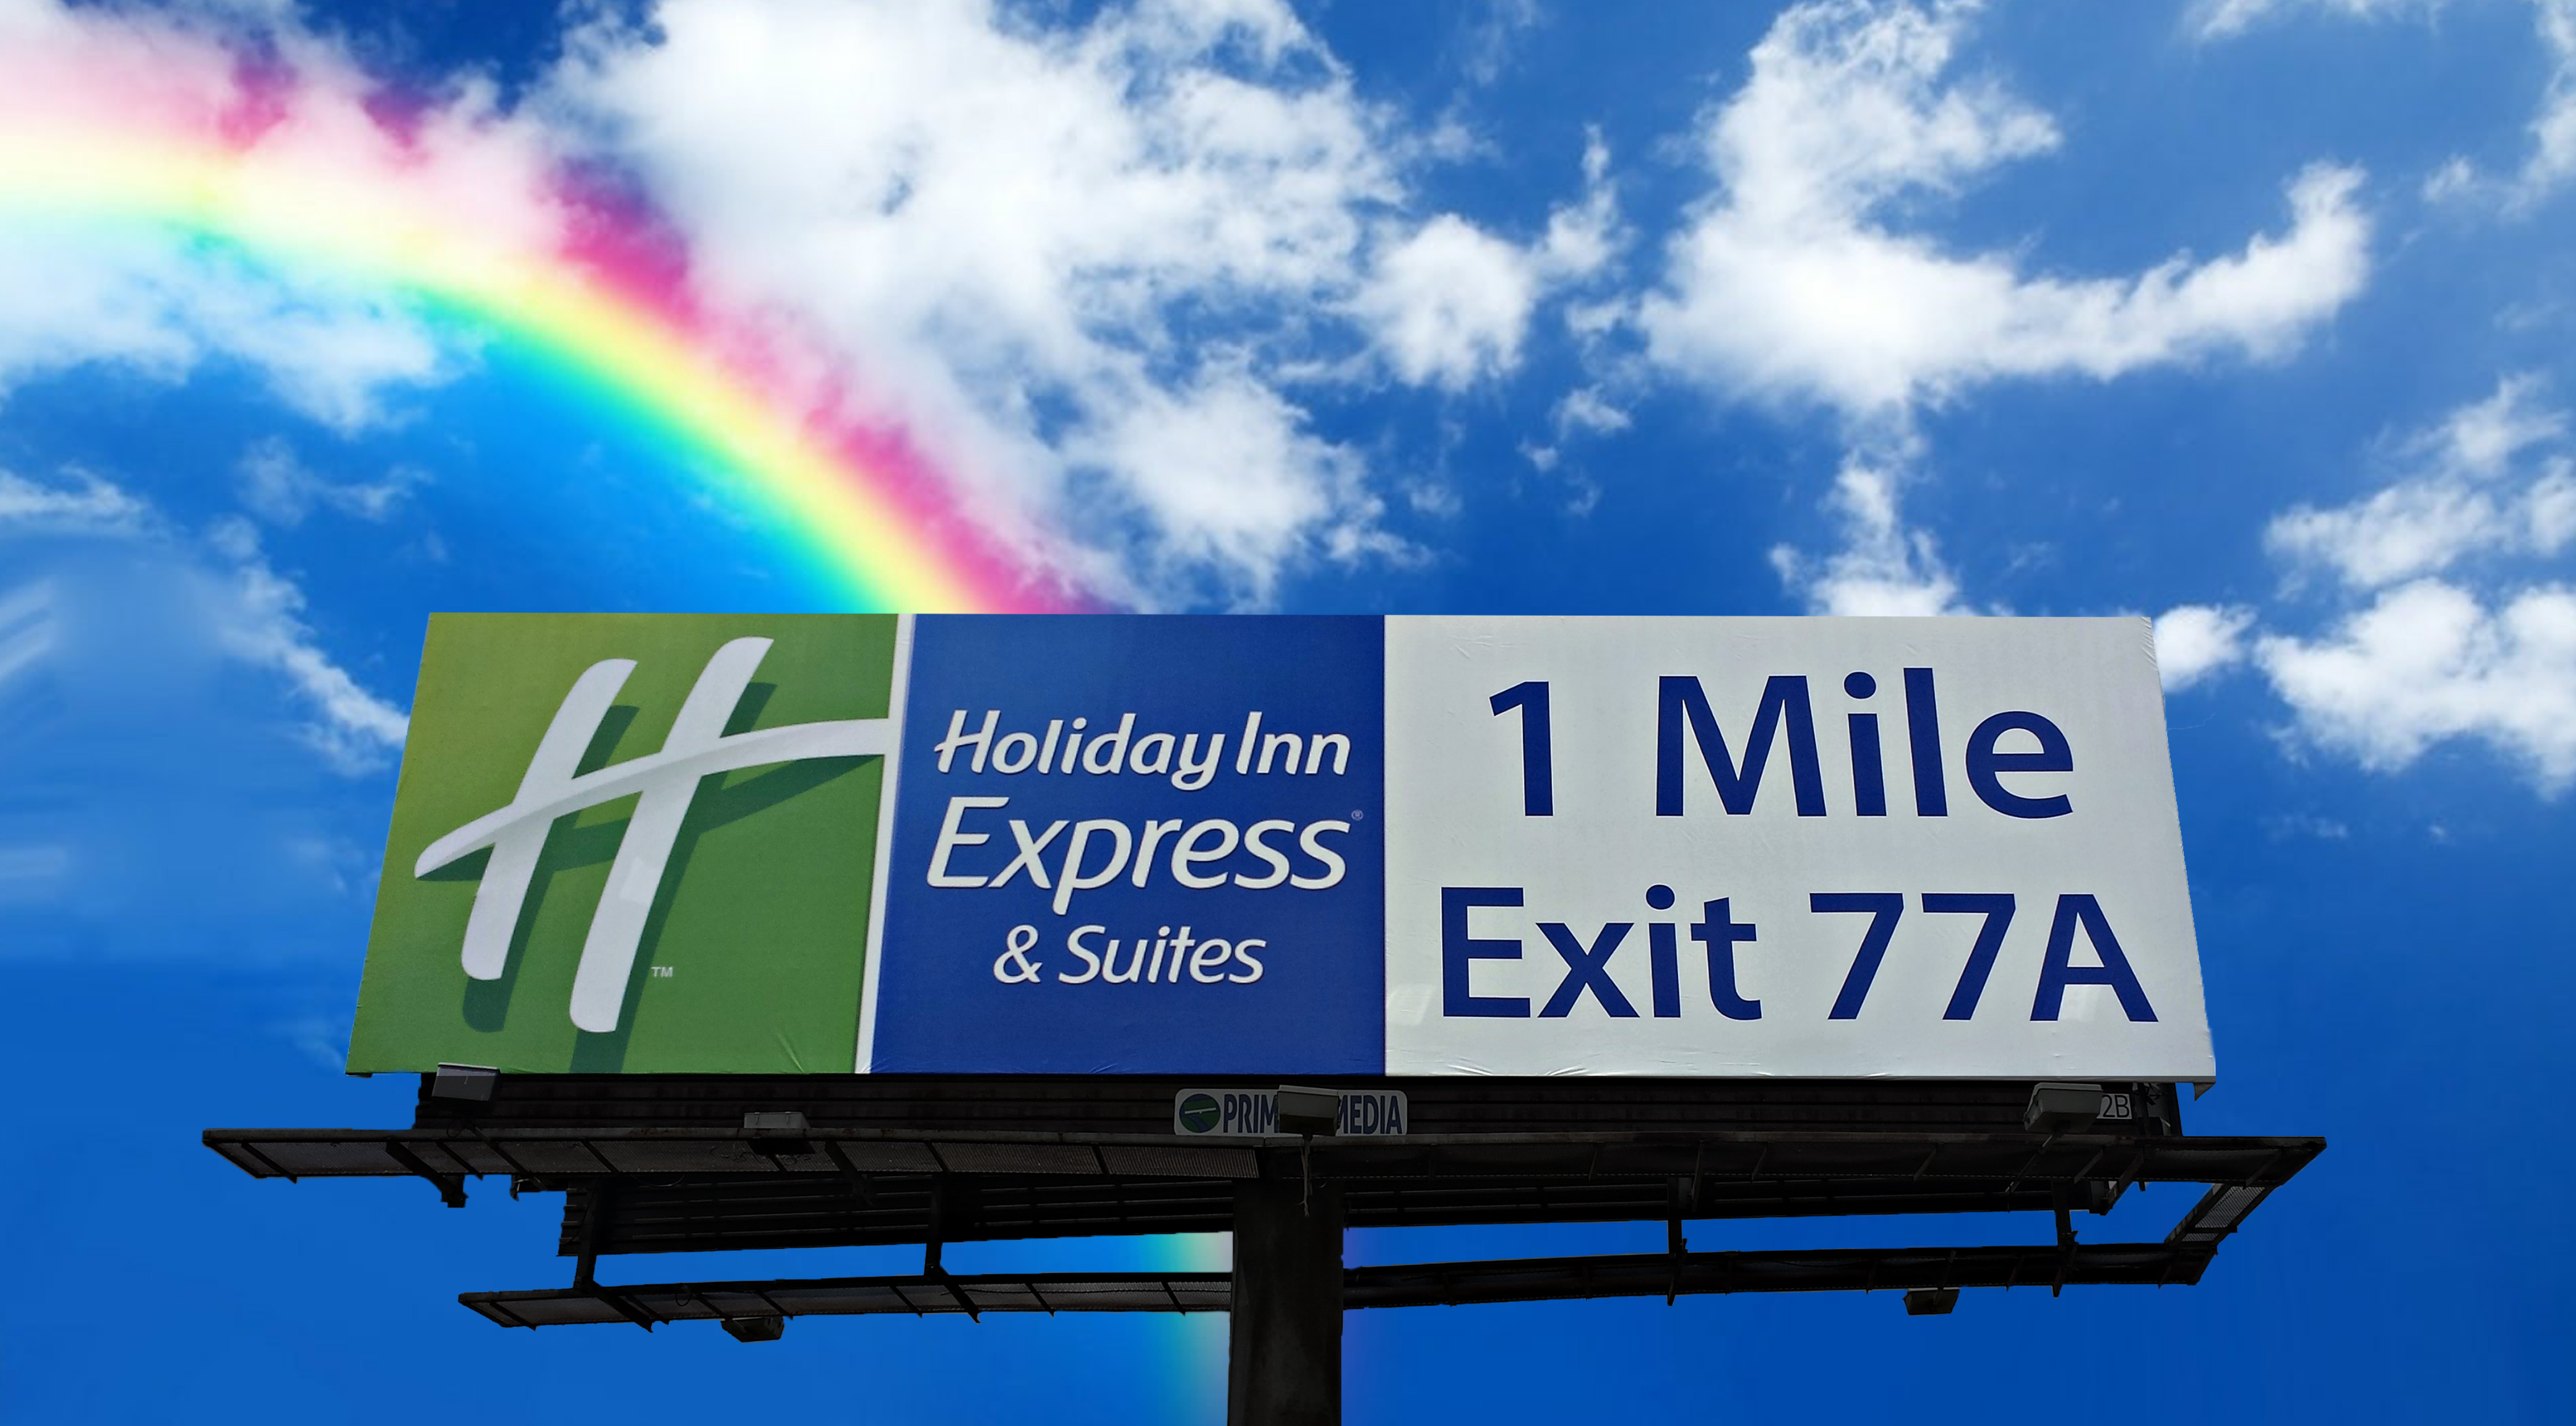 Holiday Inn Express | Primary Media